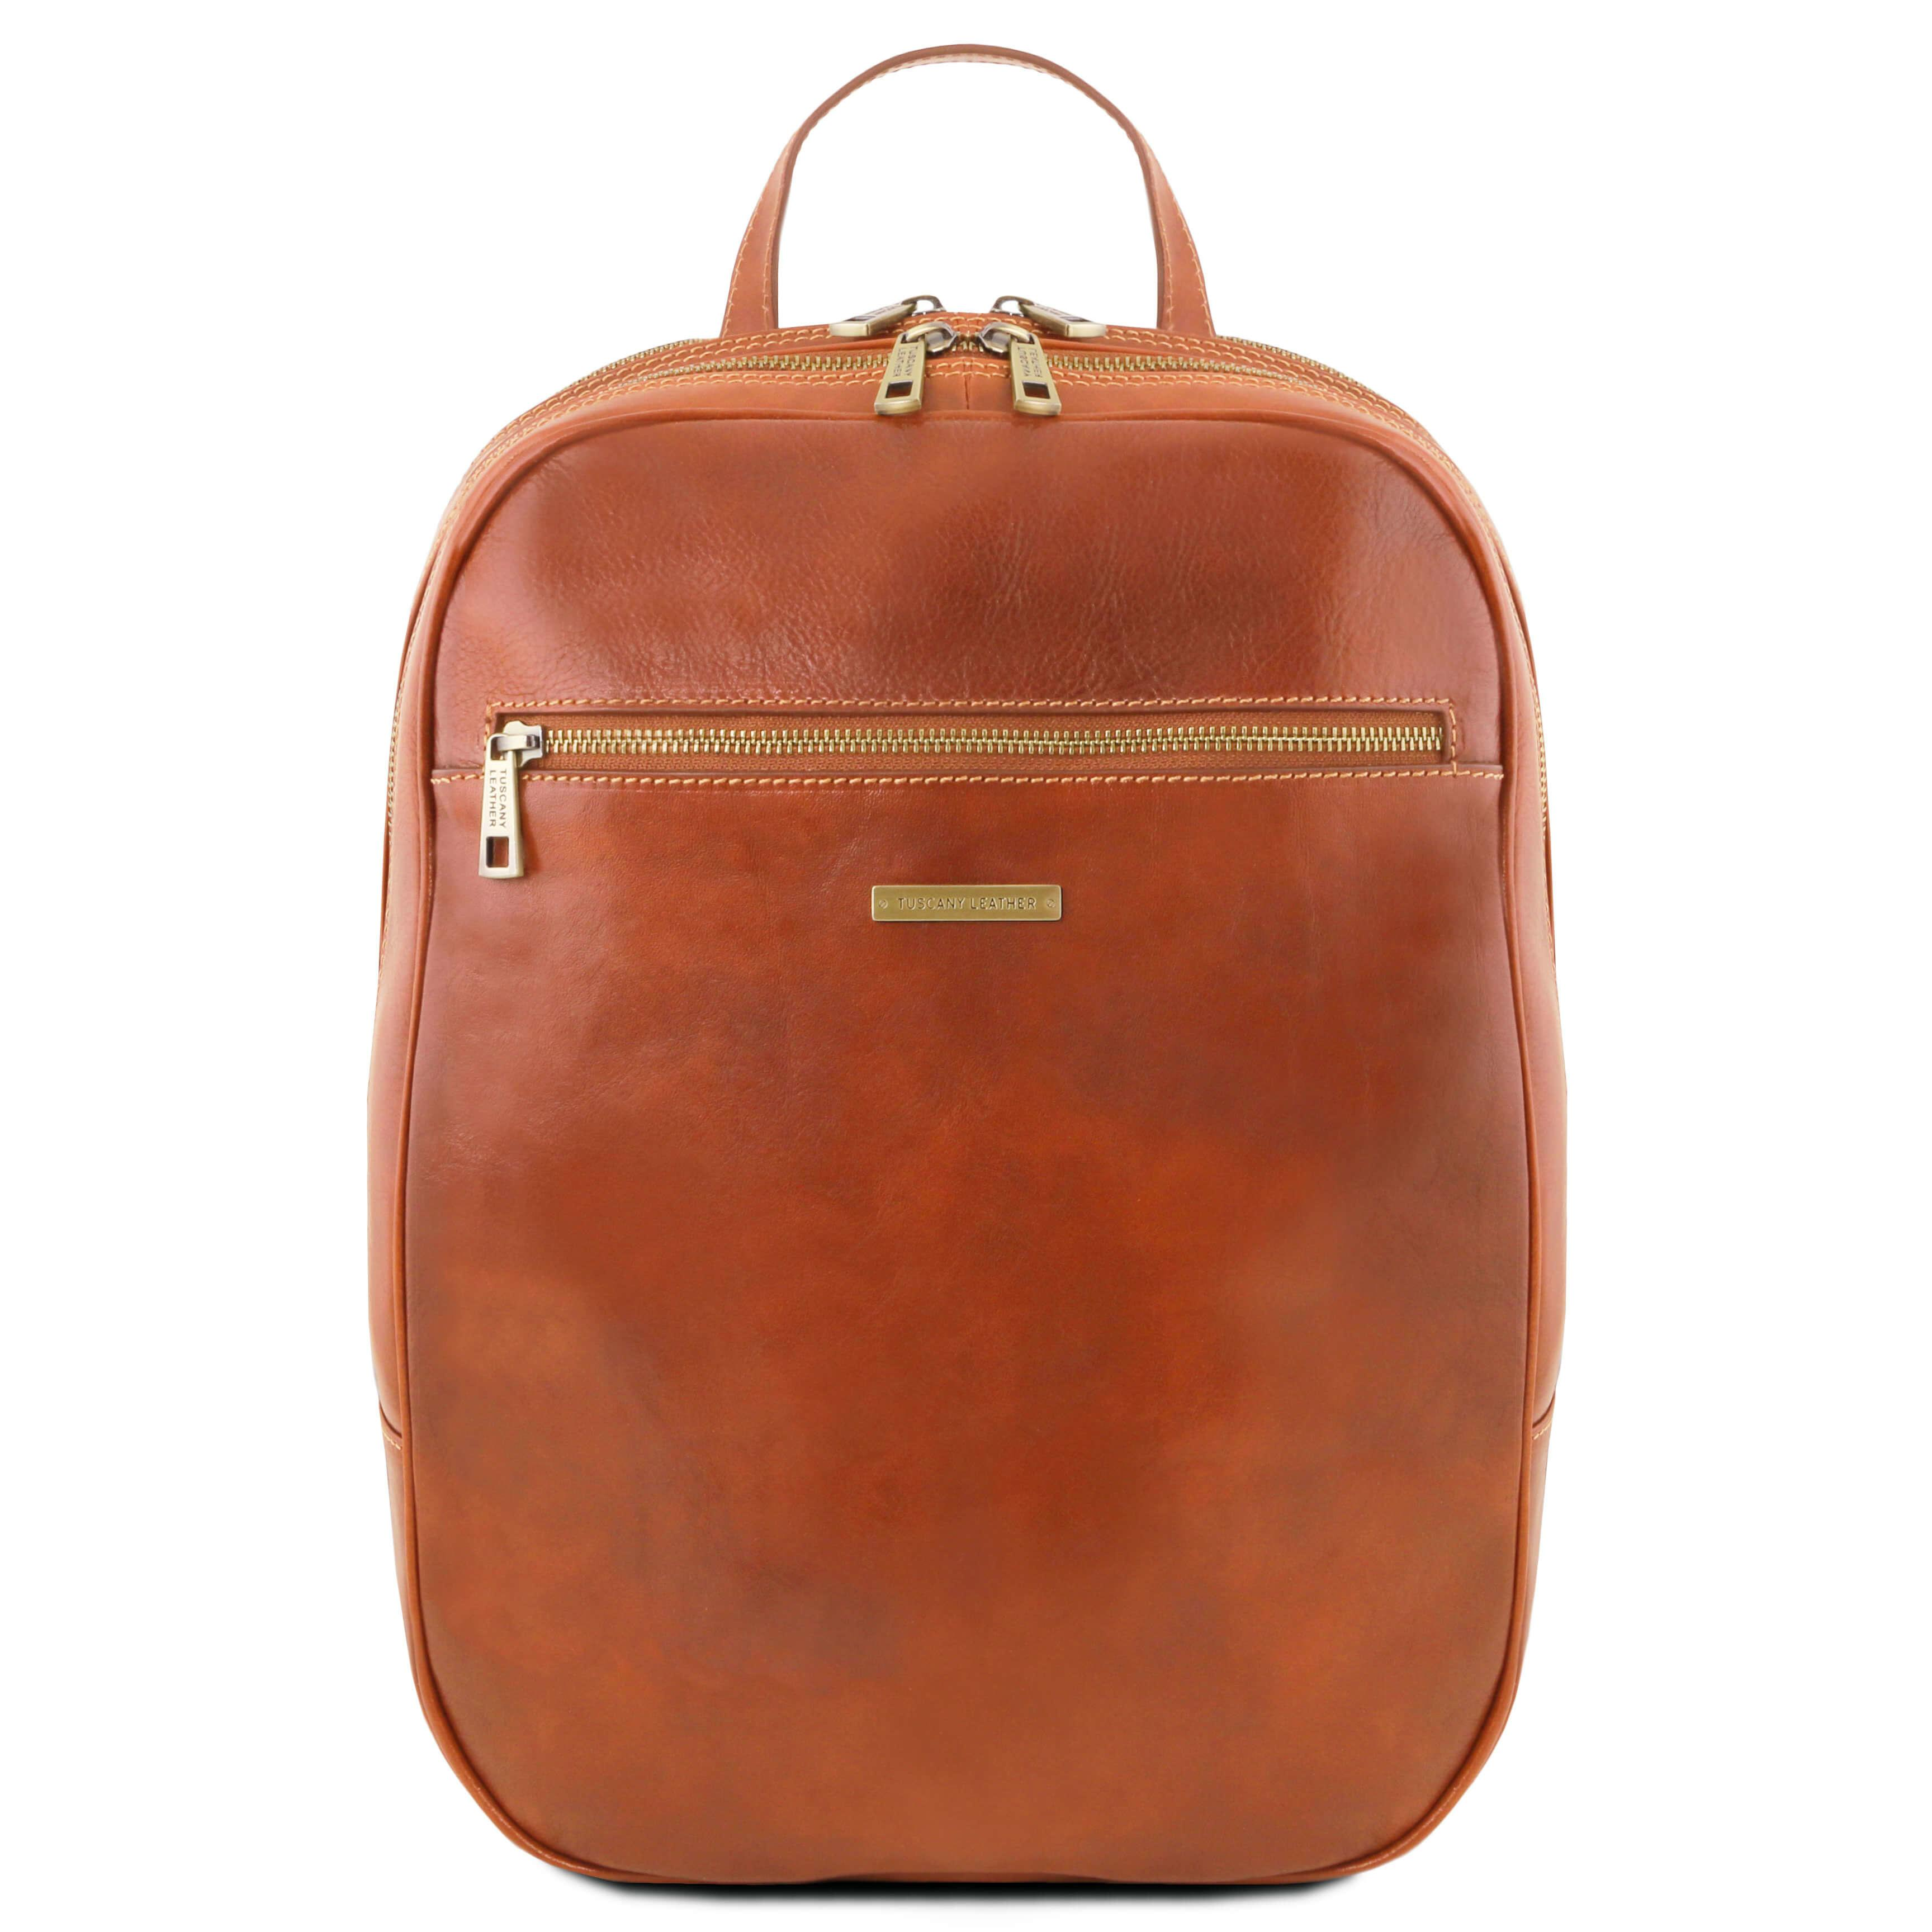 "TL141711 Tuscany Leather Osaka 13.3"" Laptop - Backpack - Rucksack - Bag"